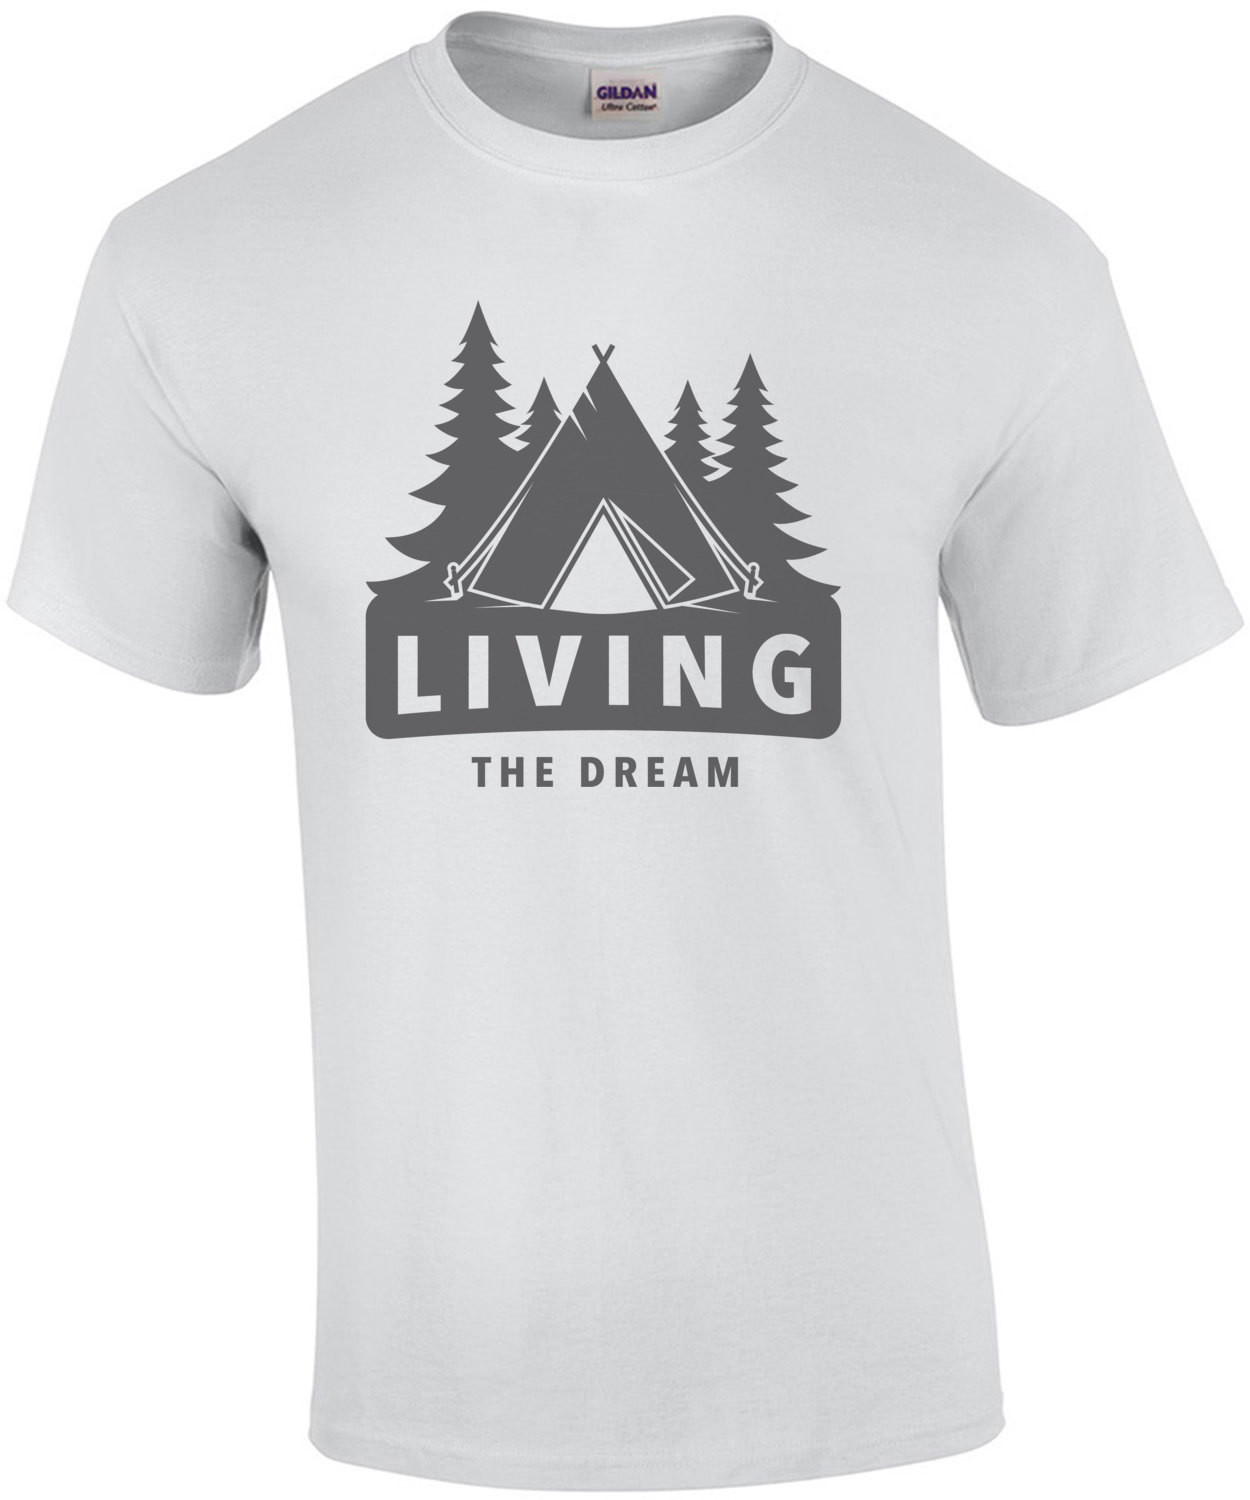 Living the dream - funny camping t-shirt